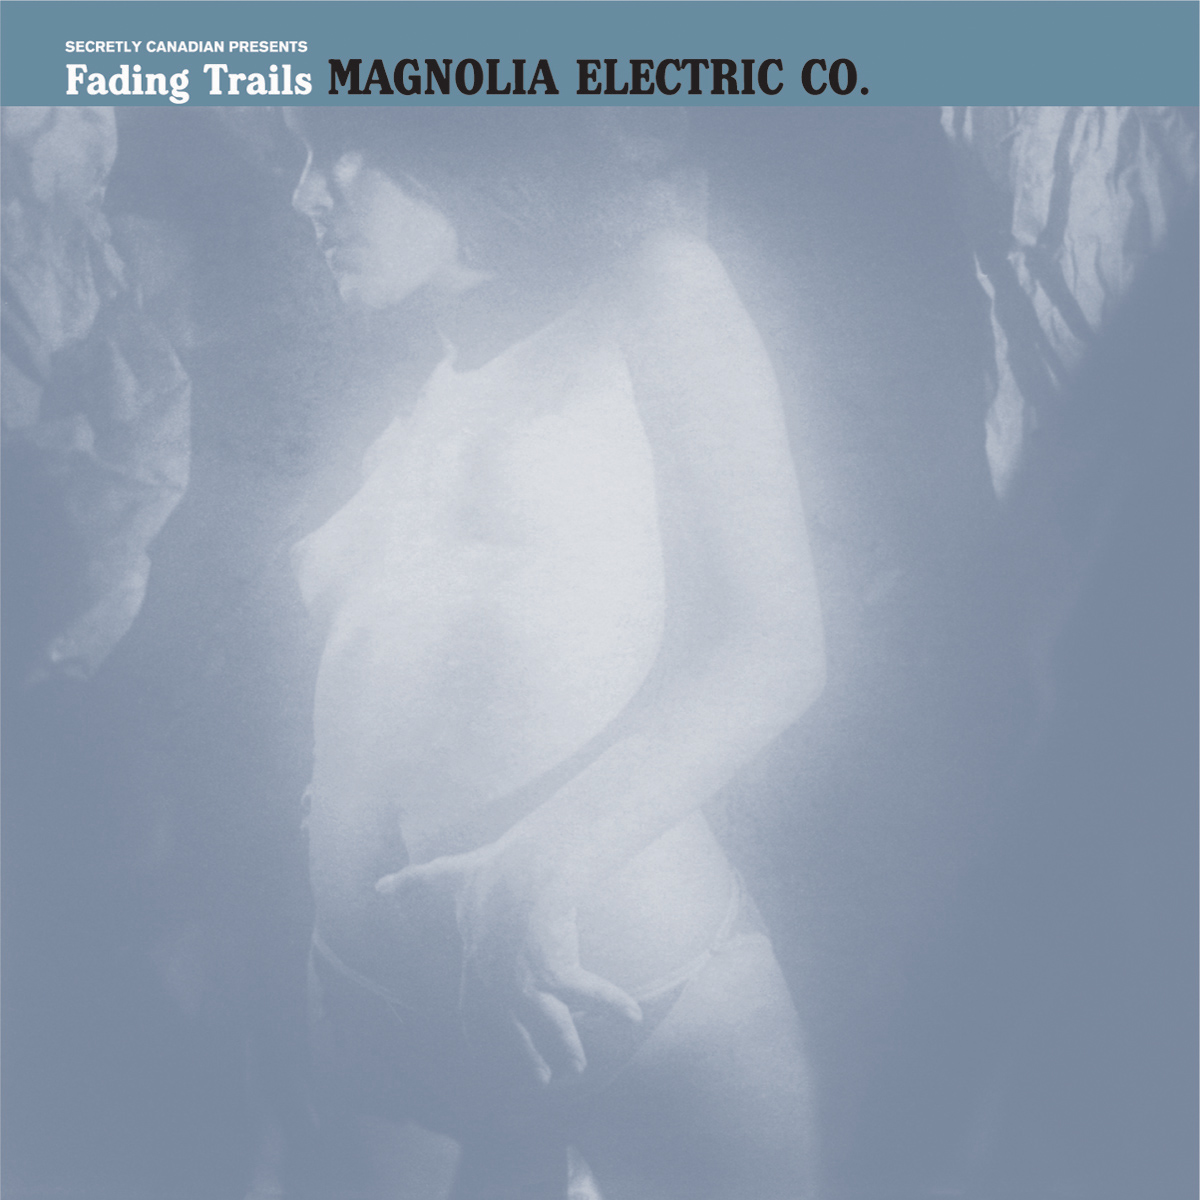 Magnolia Electric Co., Fading Trails